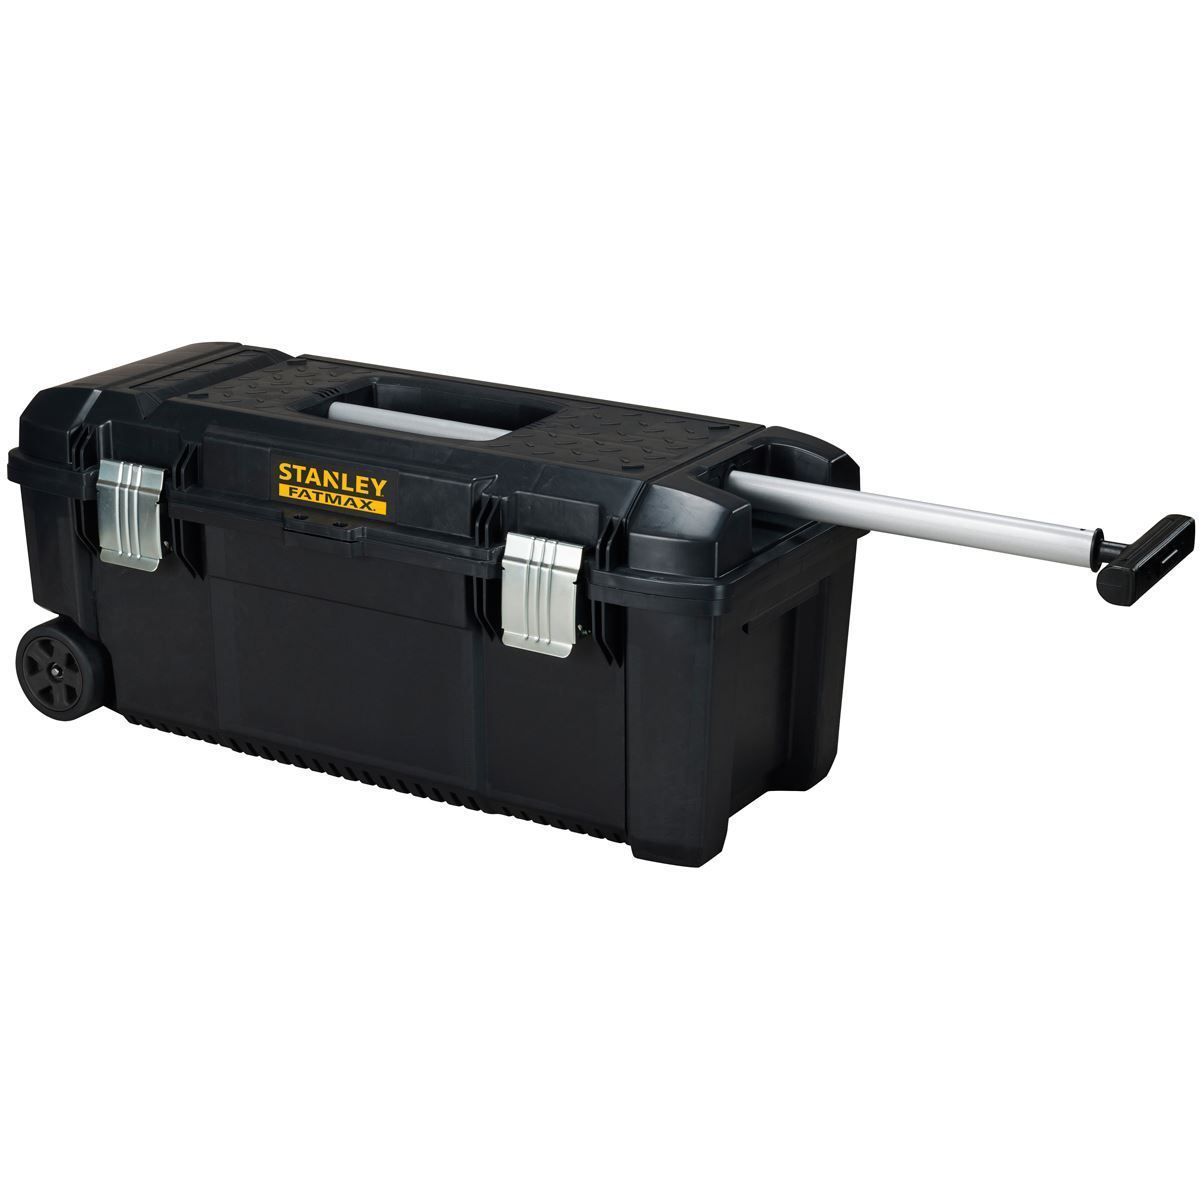 Stanley Fatmax Fmst1 75761 28 Toolbox With Telescopic